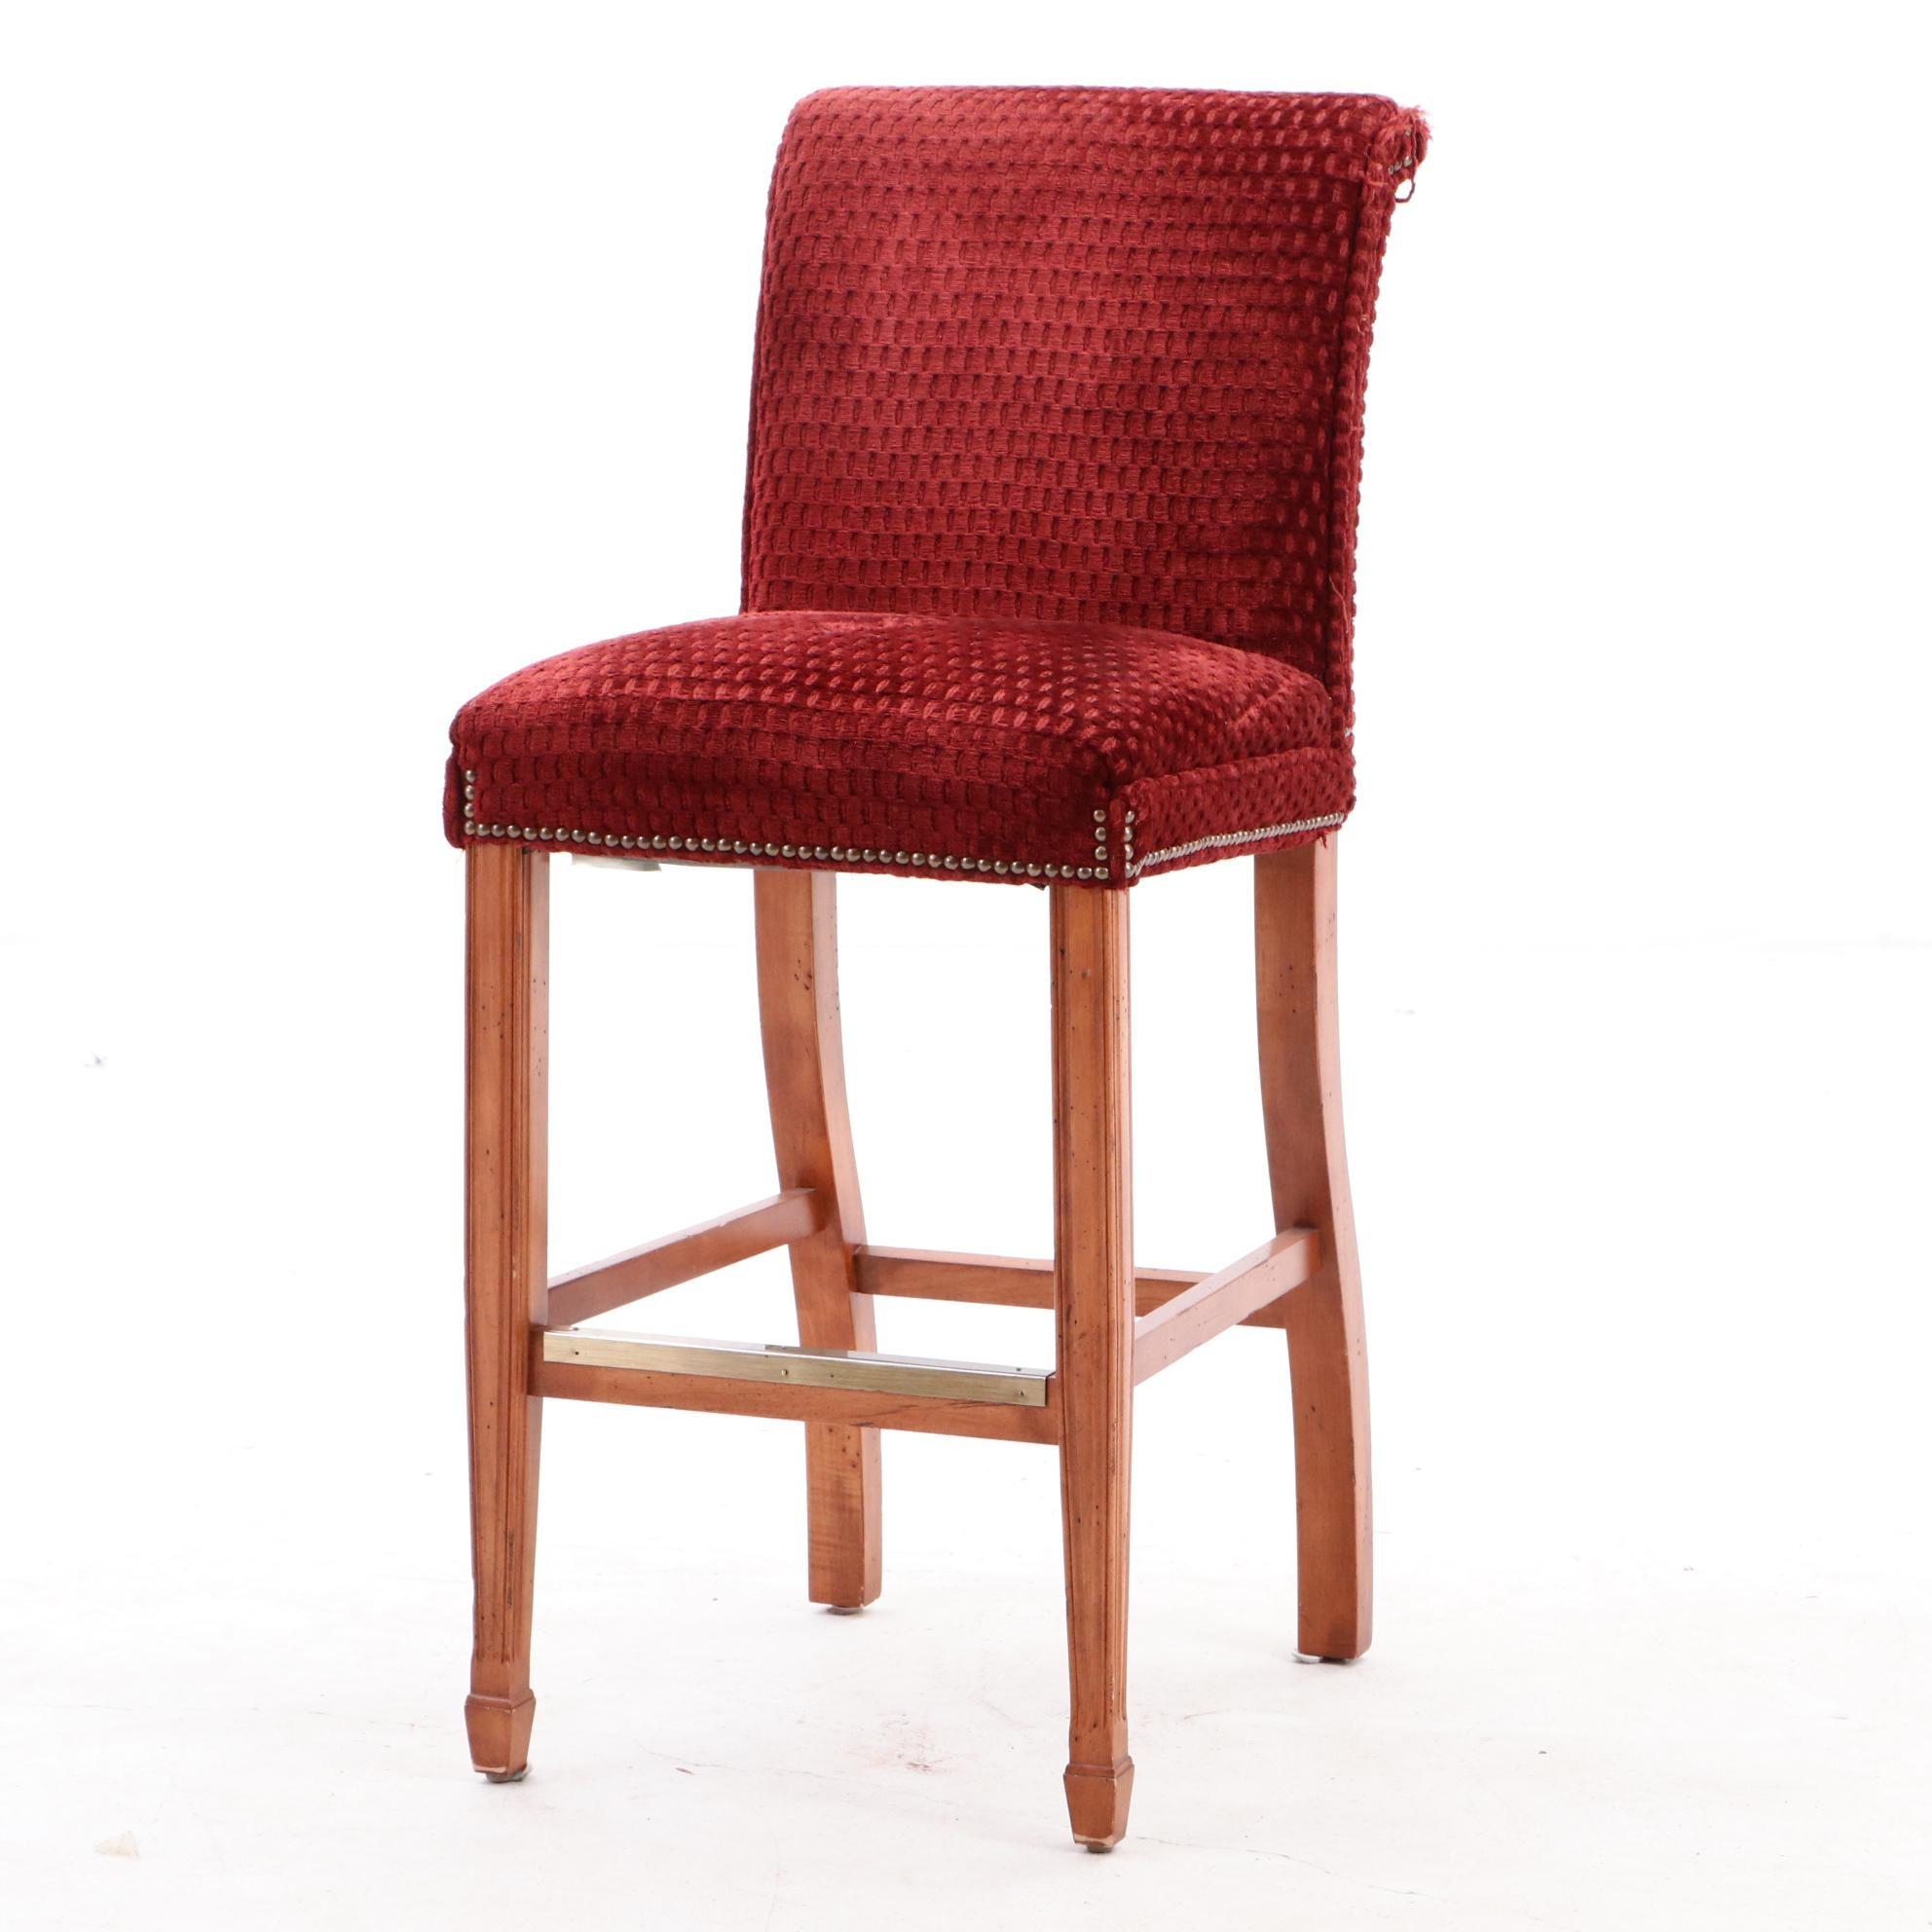 Statesville Chair Company Upholstered Counter Height Bar Stool in Red